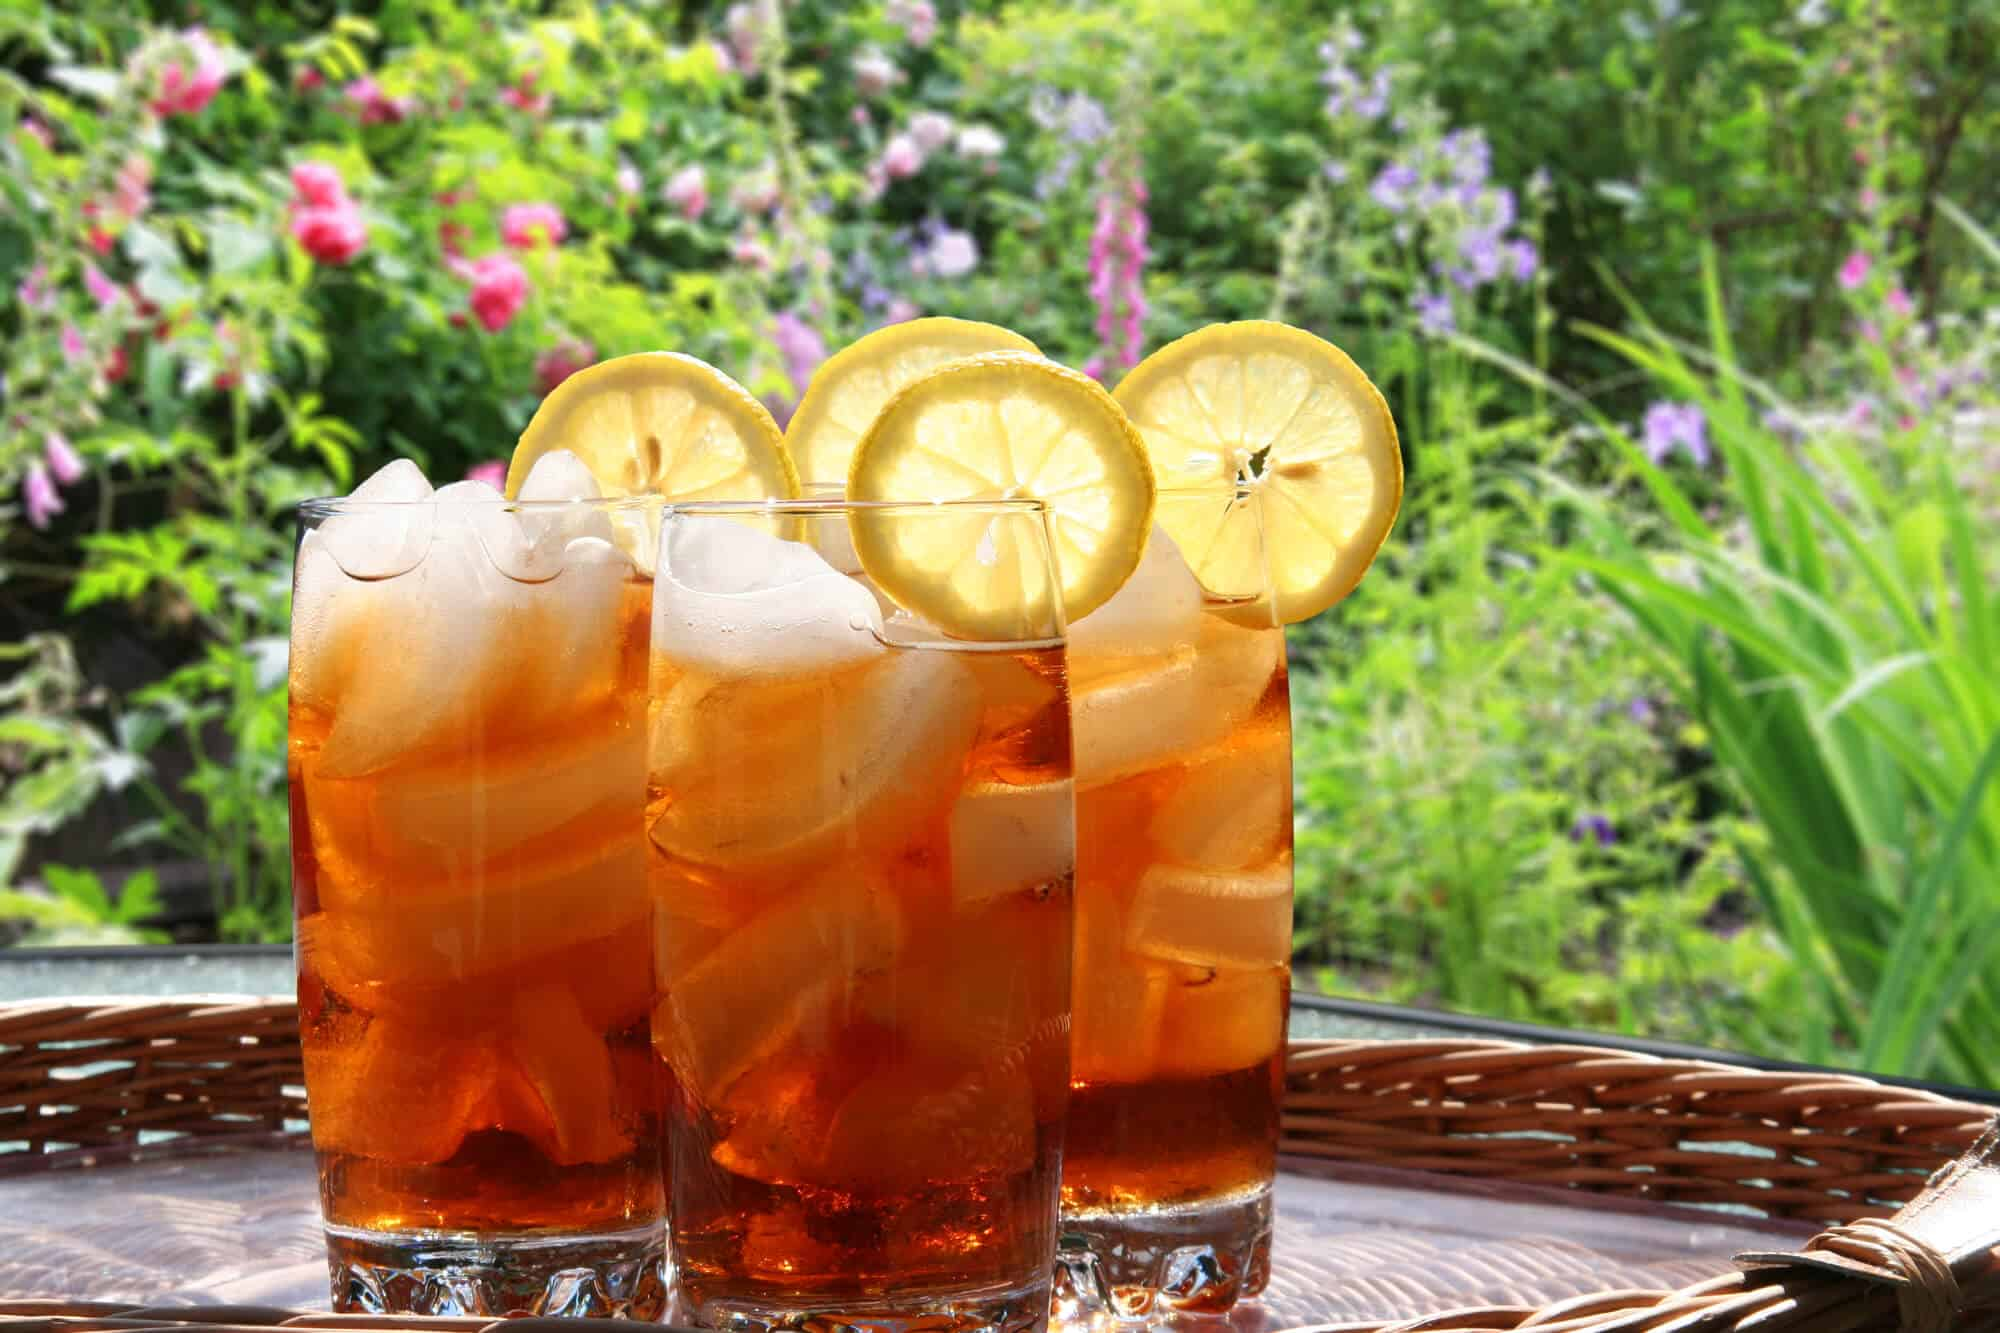 four glasses of iced tea or sweet tea with lemon slices in a garden